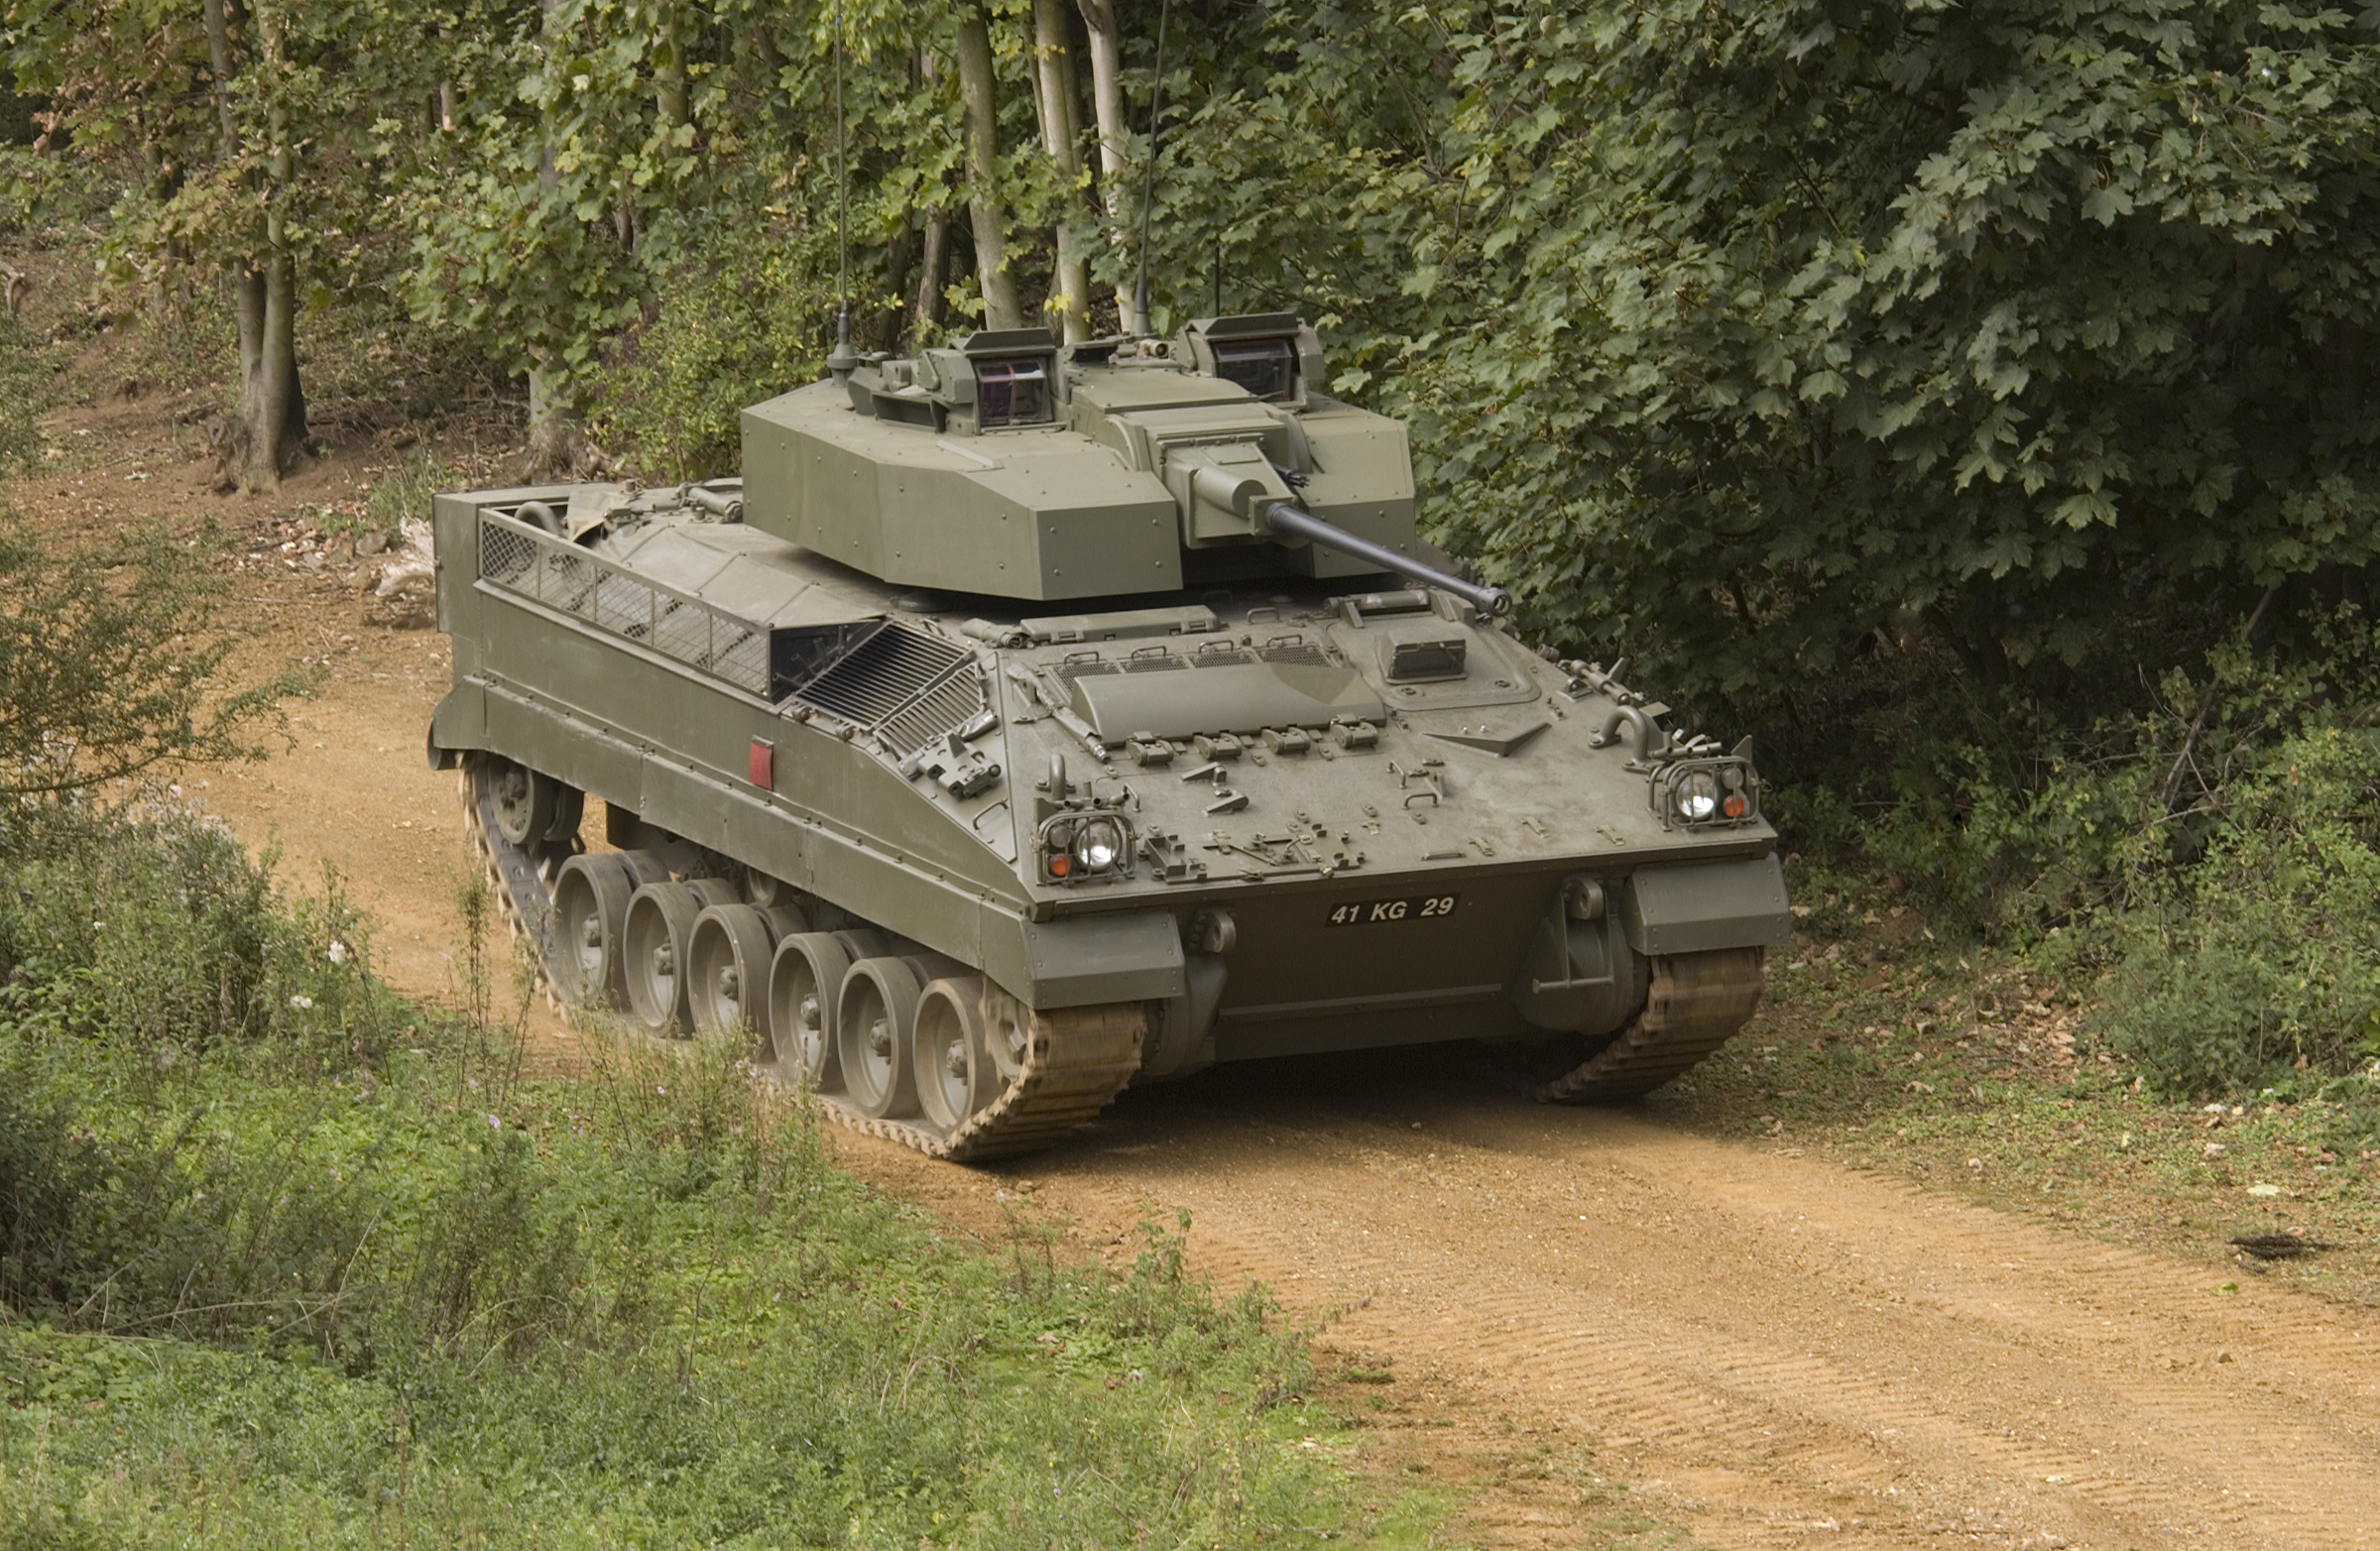 The first modernized warrior 2 infantry fighting vehicles transferred to the British Army 35